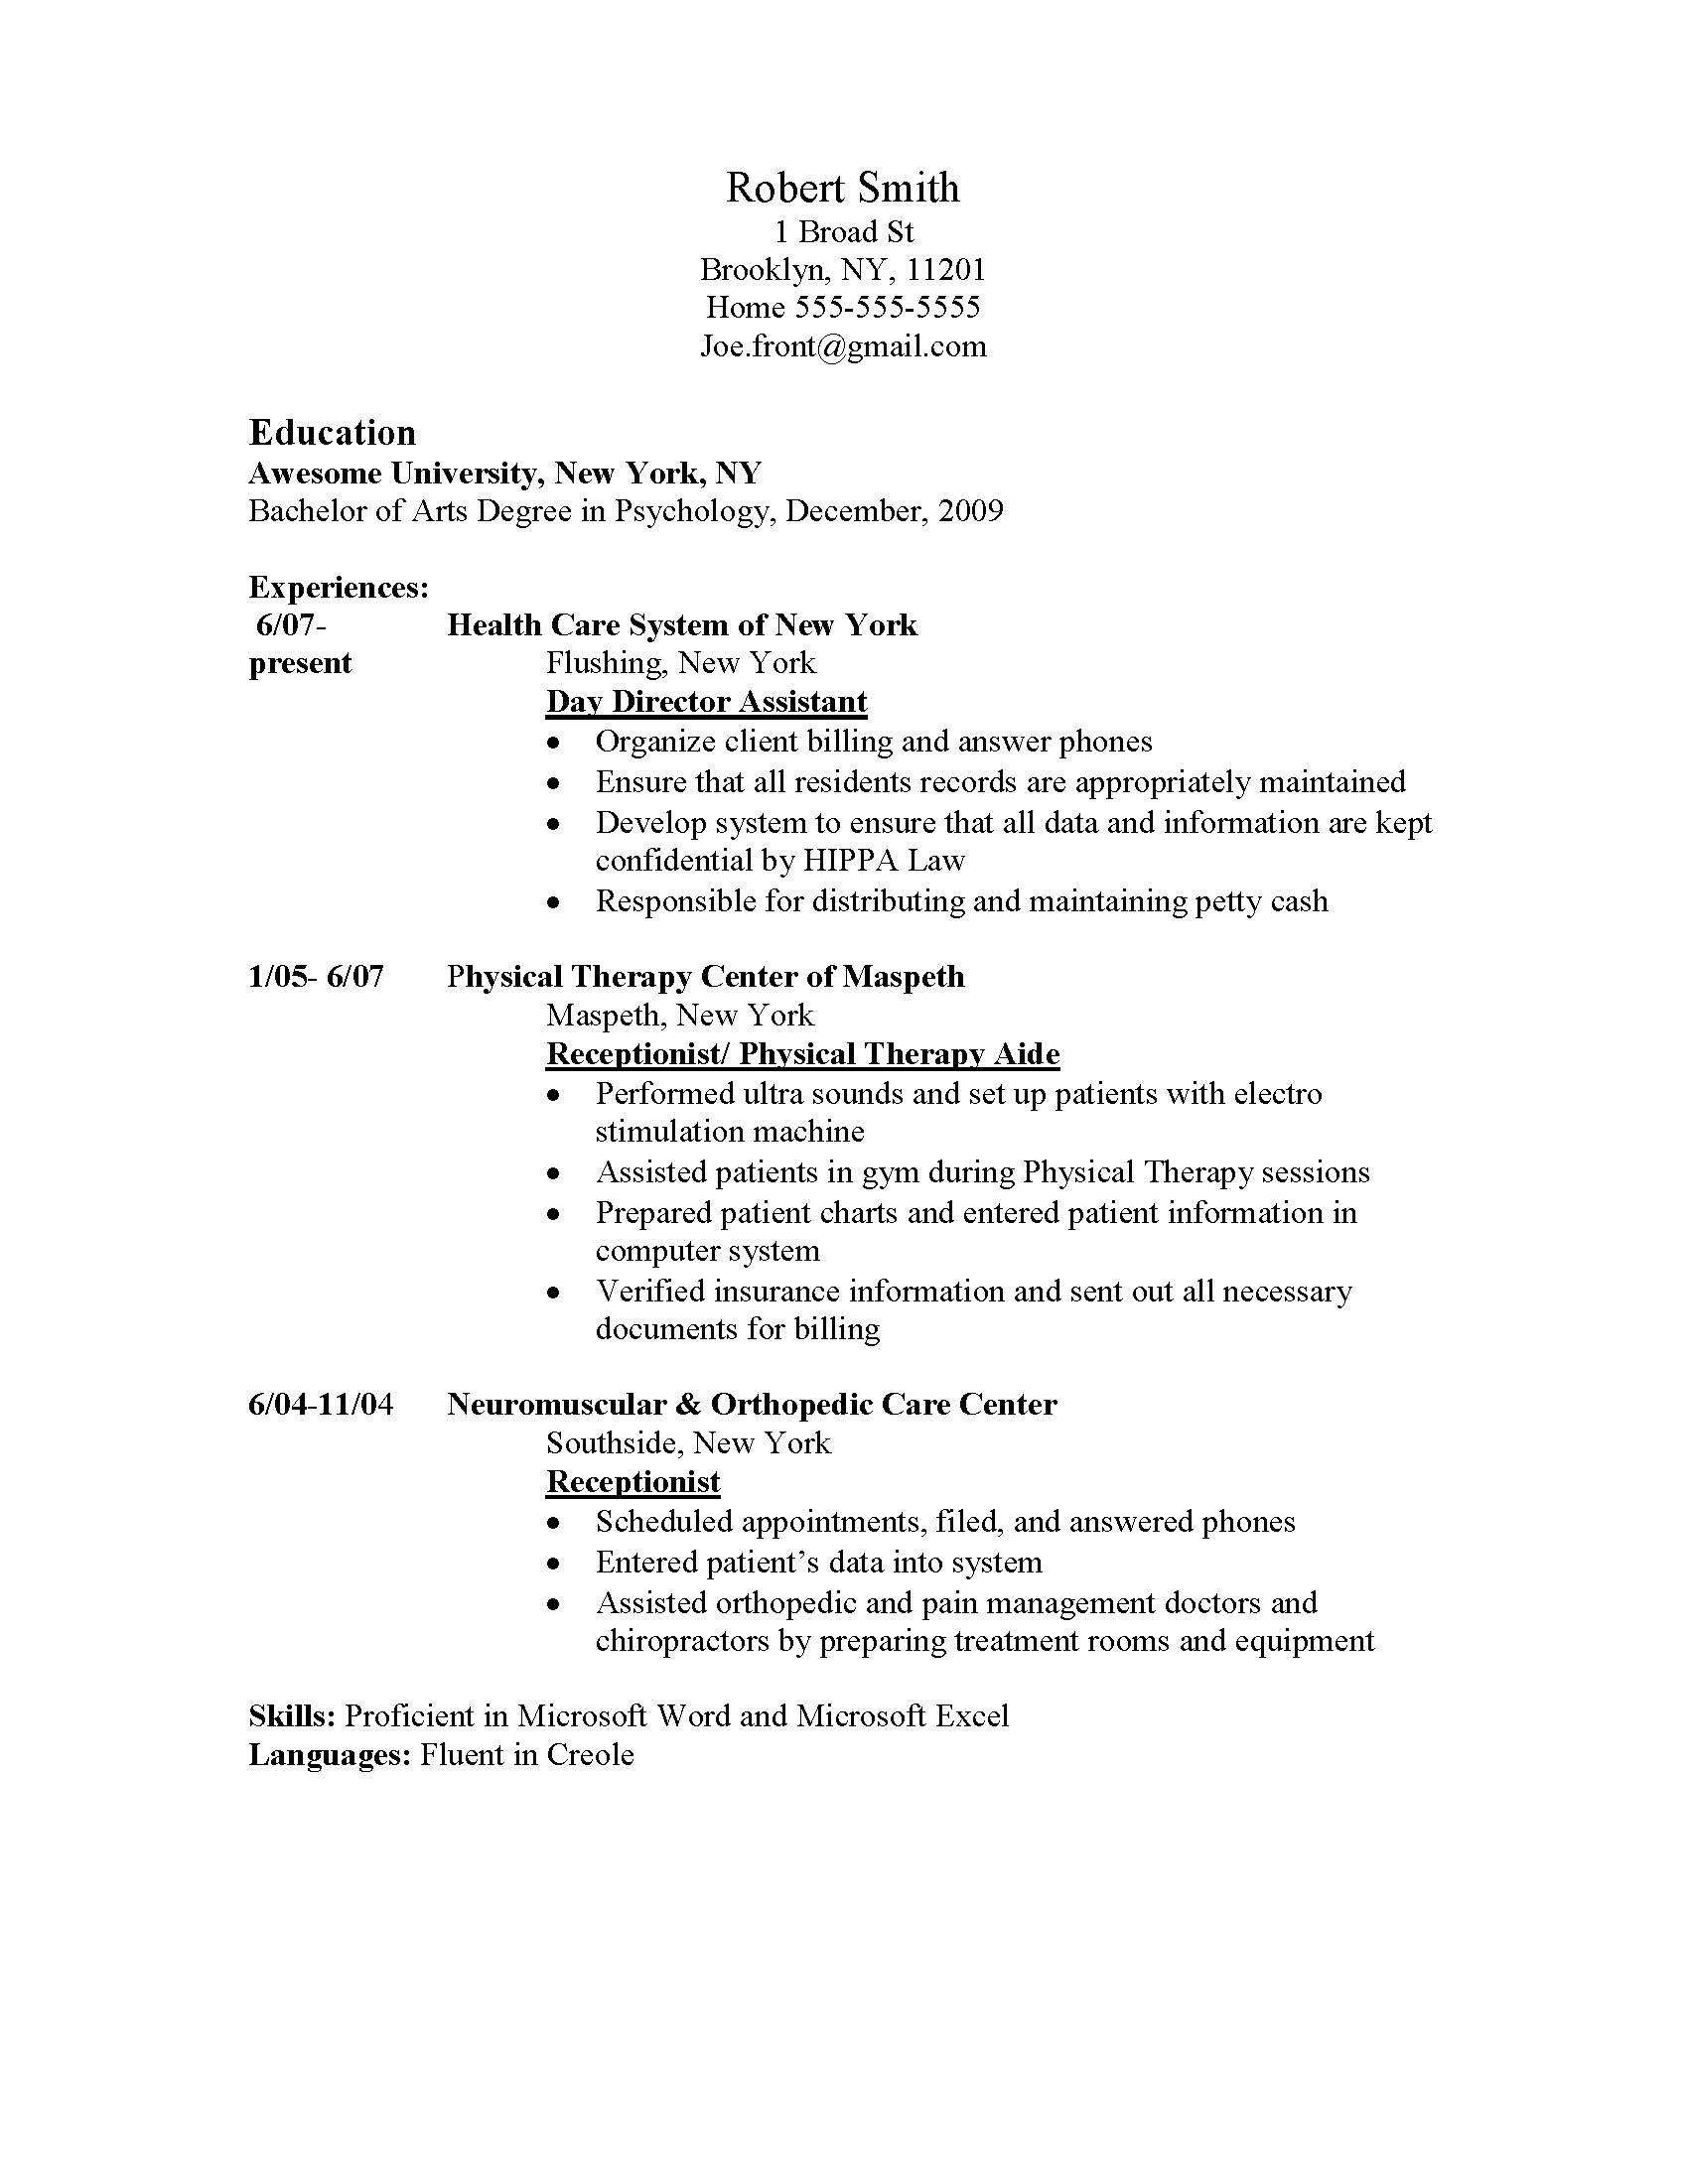 Skills And Abilities For Resume Sample Skills And Abilities For Resume  Sample, Skills To List On Resume, Skills You Can Put On A Resume,  Professional Skills ...